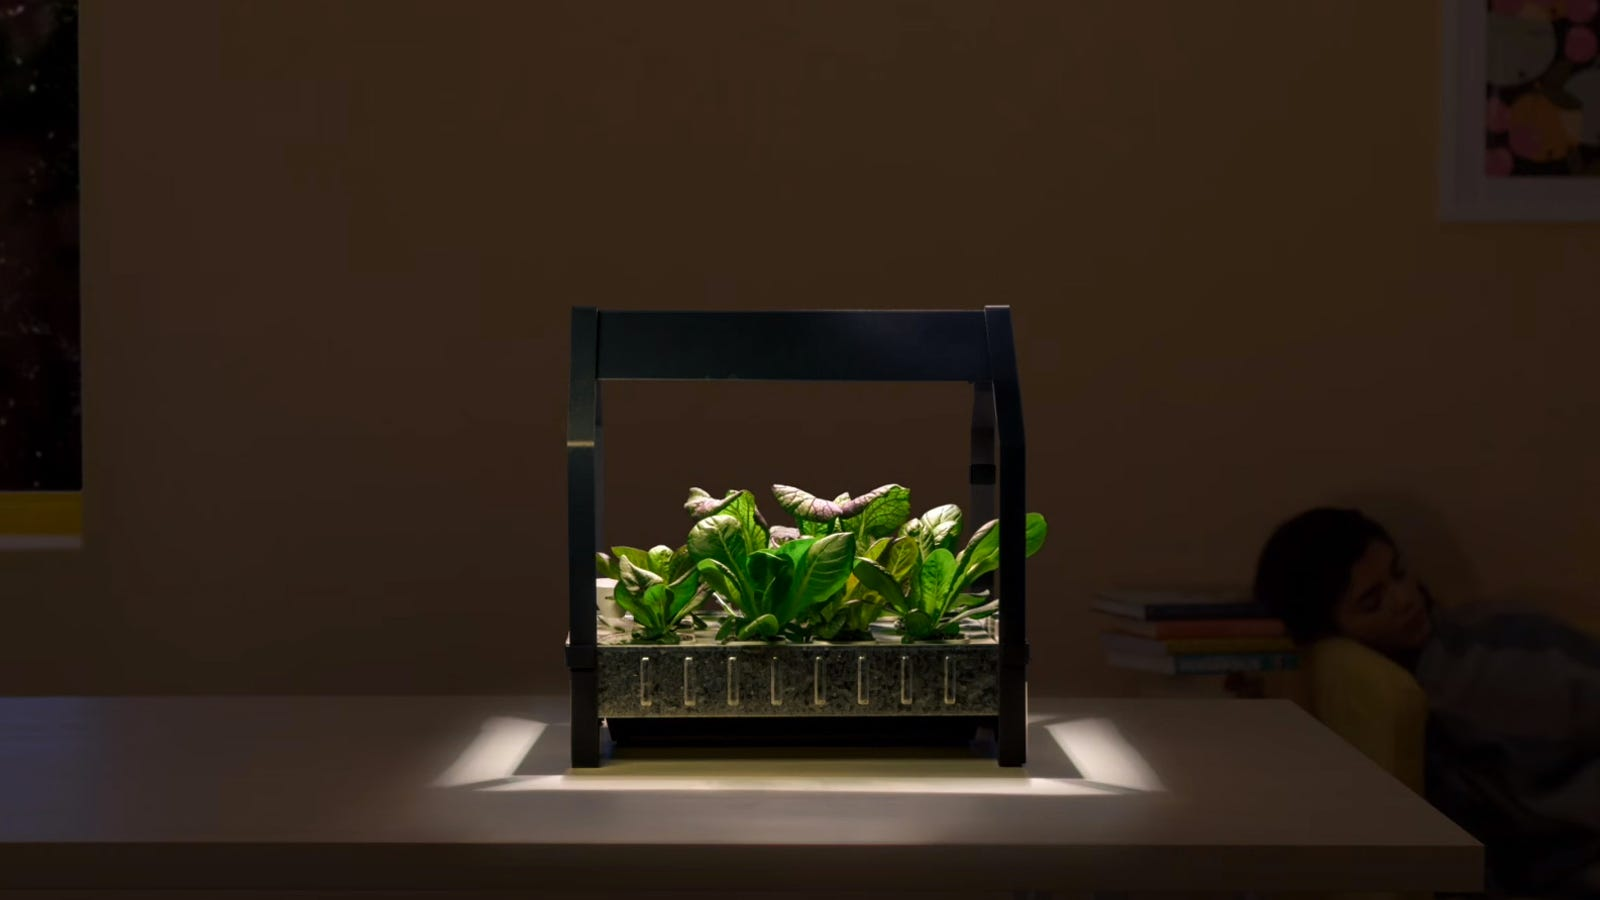 IKEA Keeps Getting Weirder, Now Sells Hydroponic Gardens